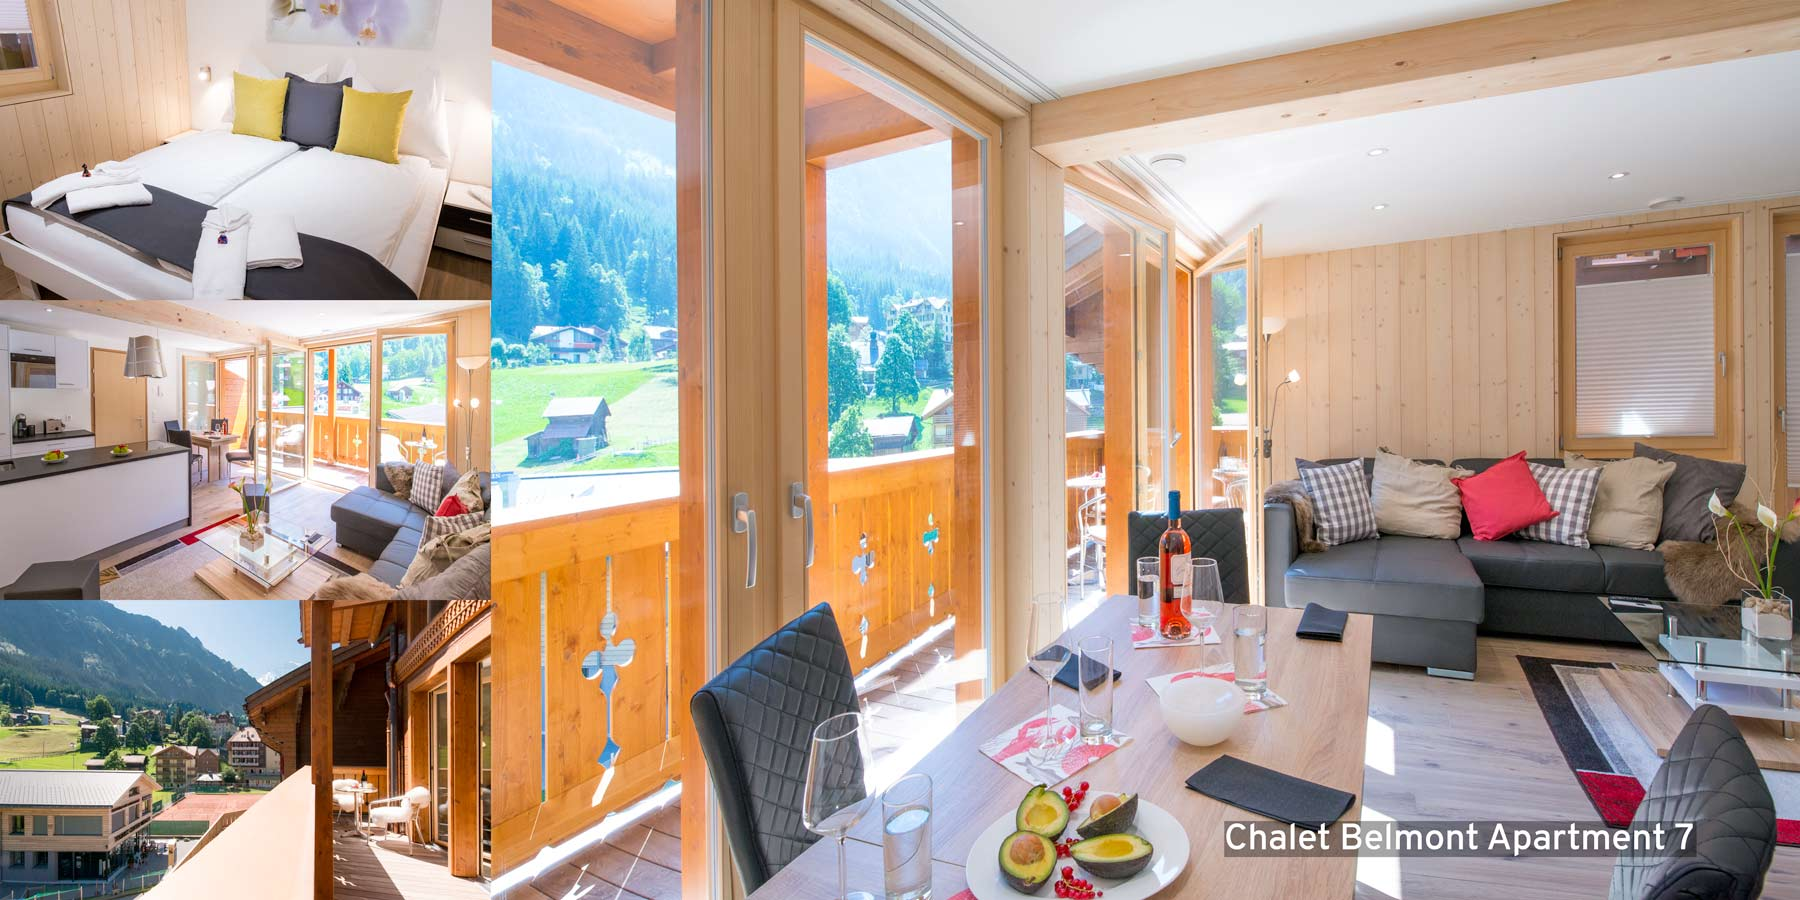 chalet-belmont-apartment-7